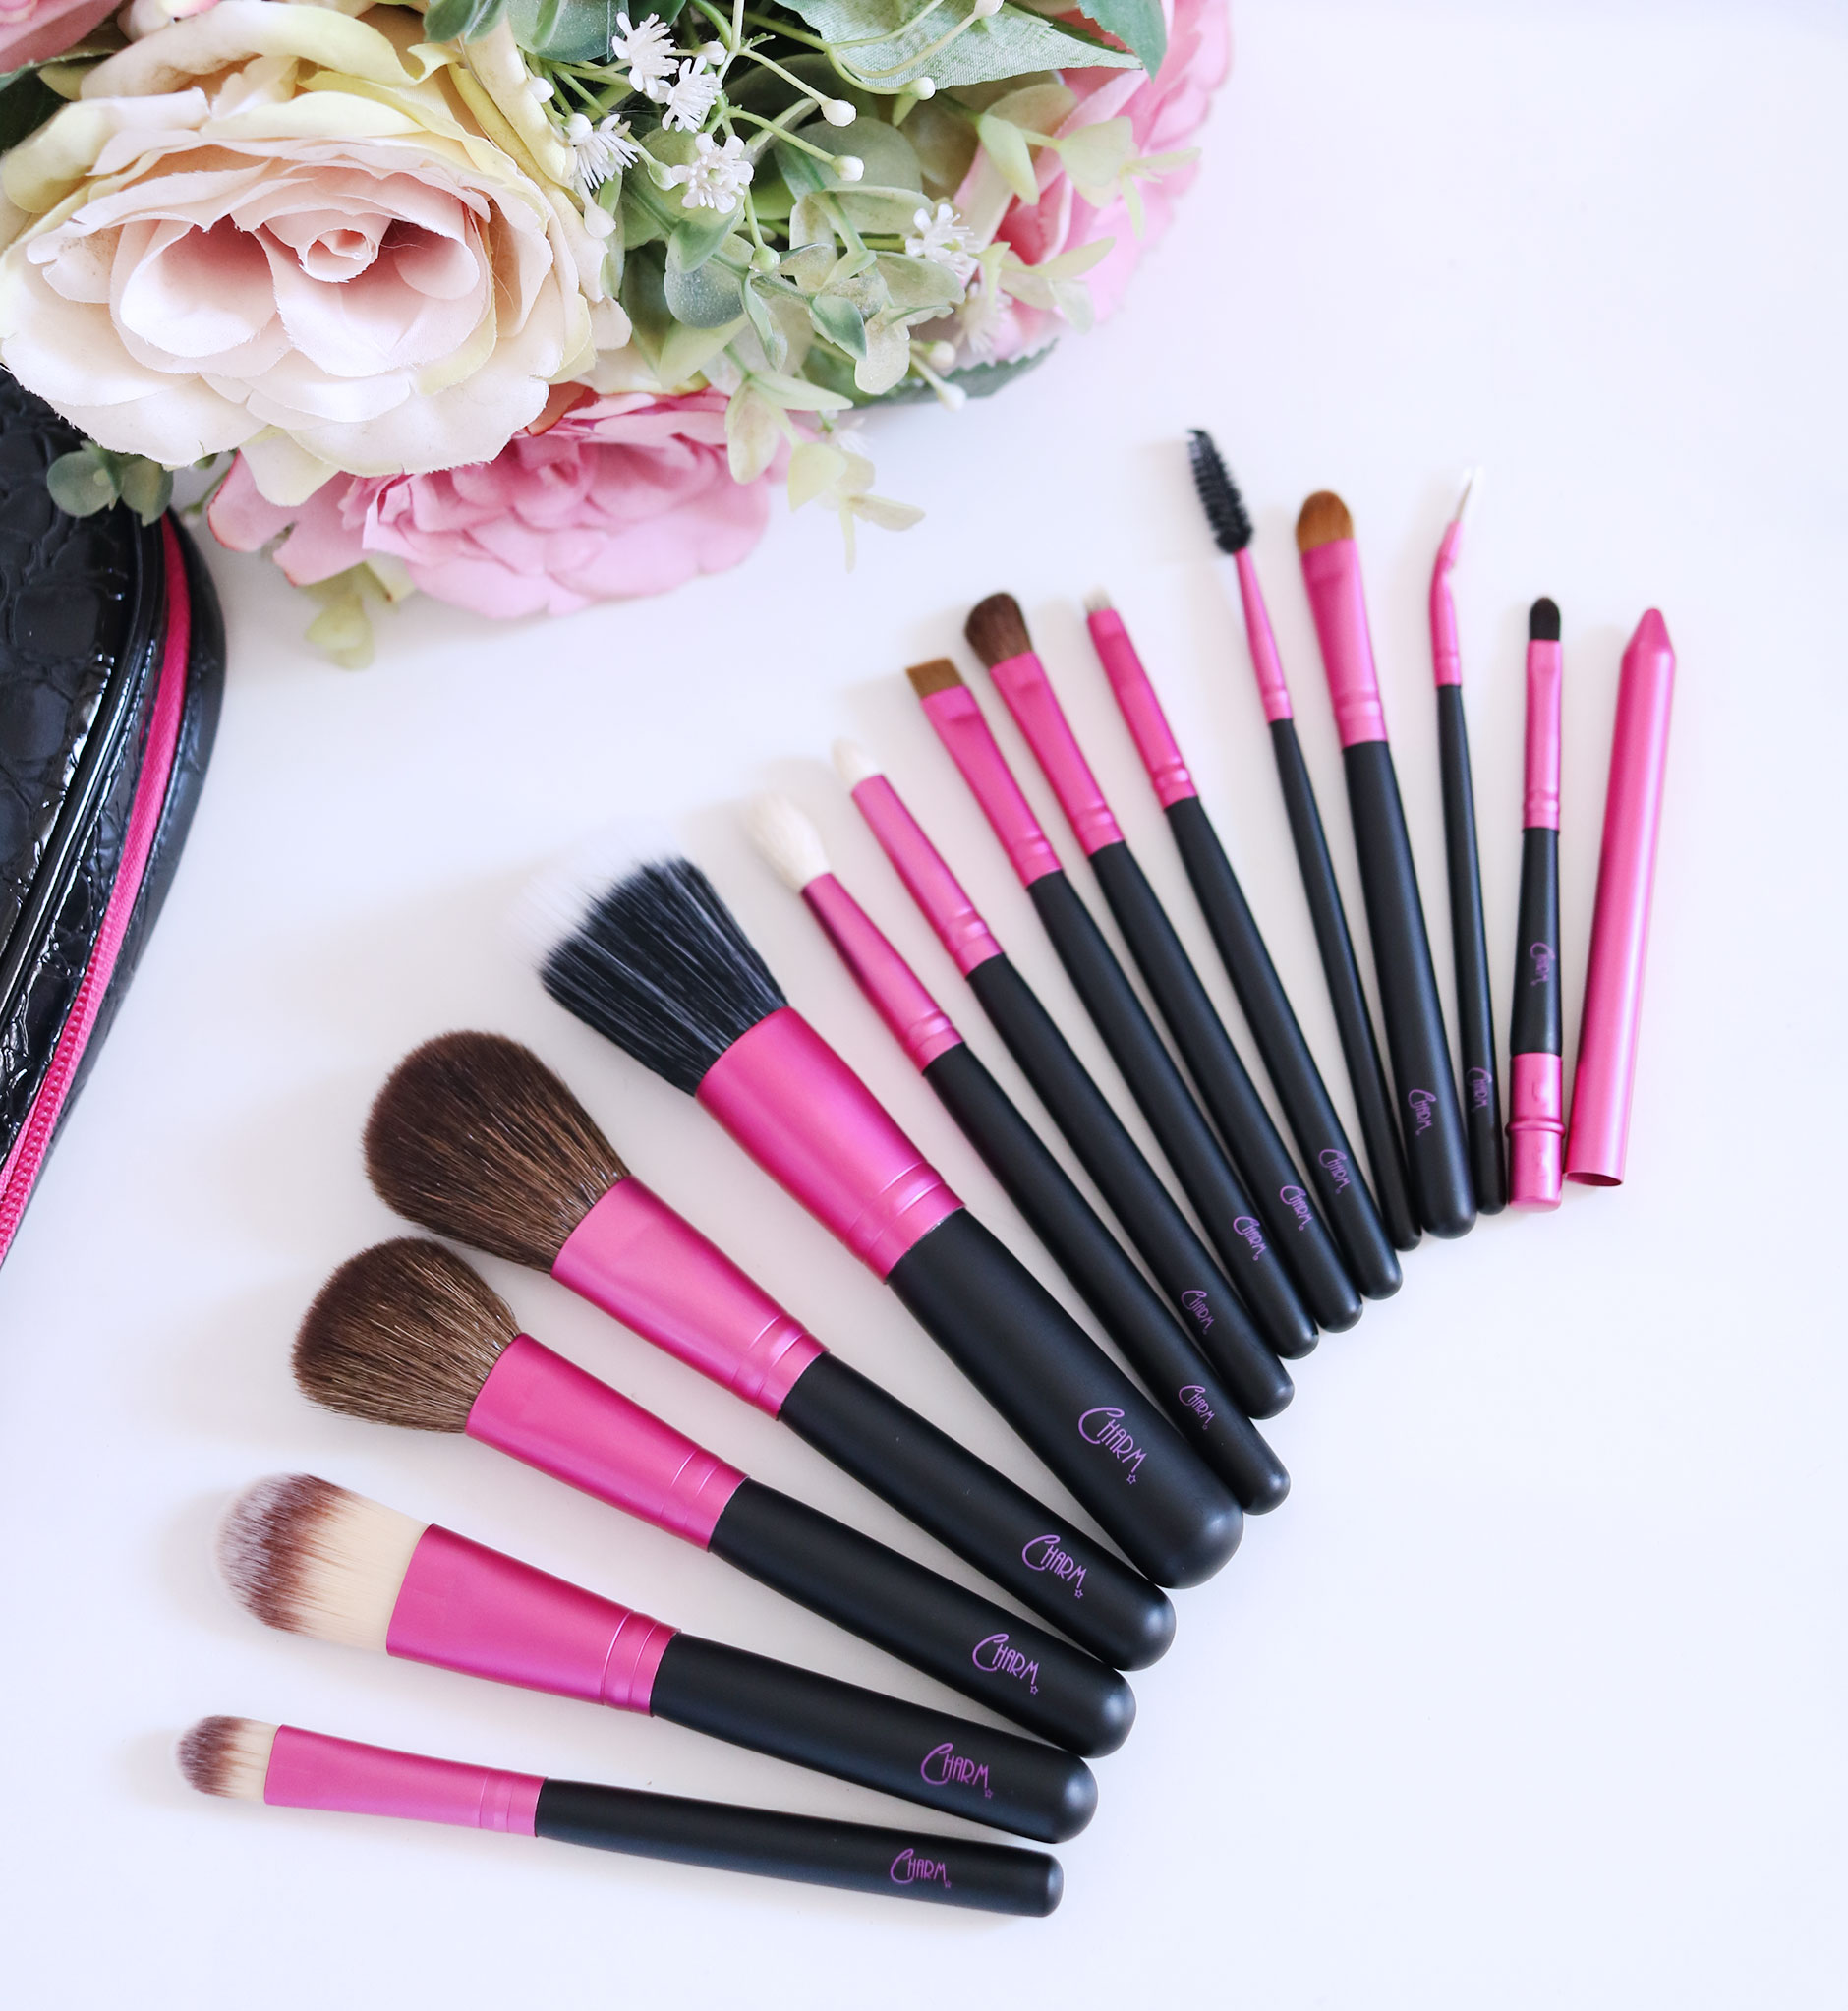 My Charm Essentials Makeup Brushes After 5 Years New